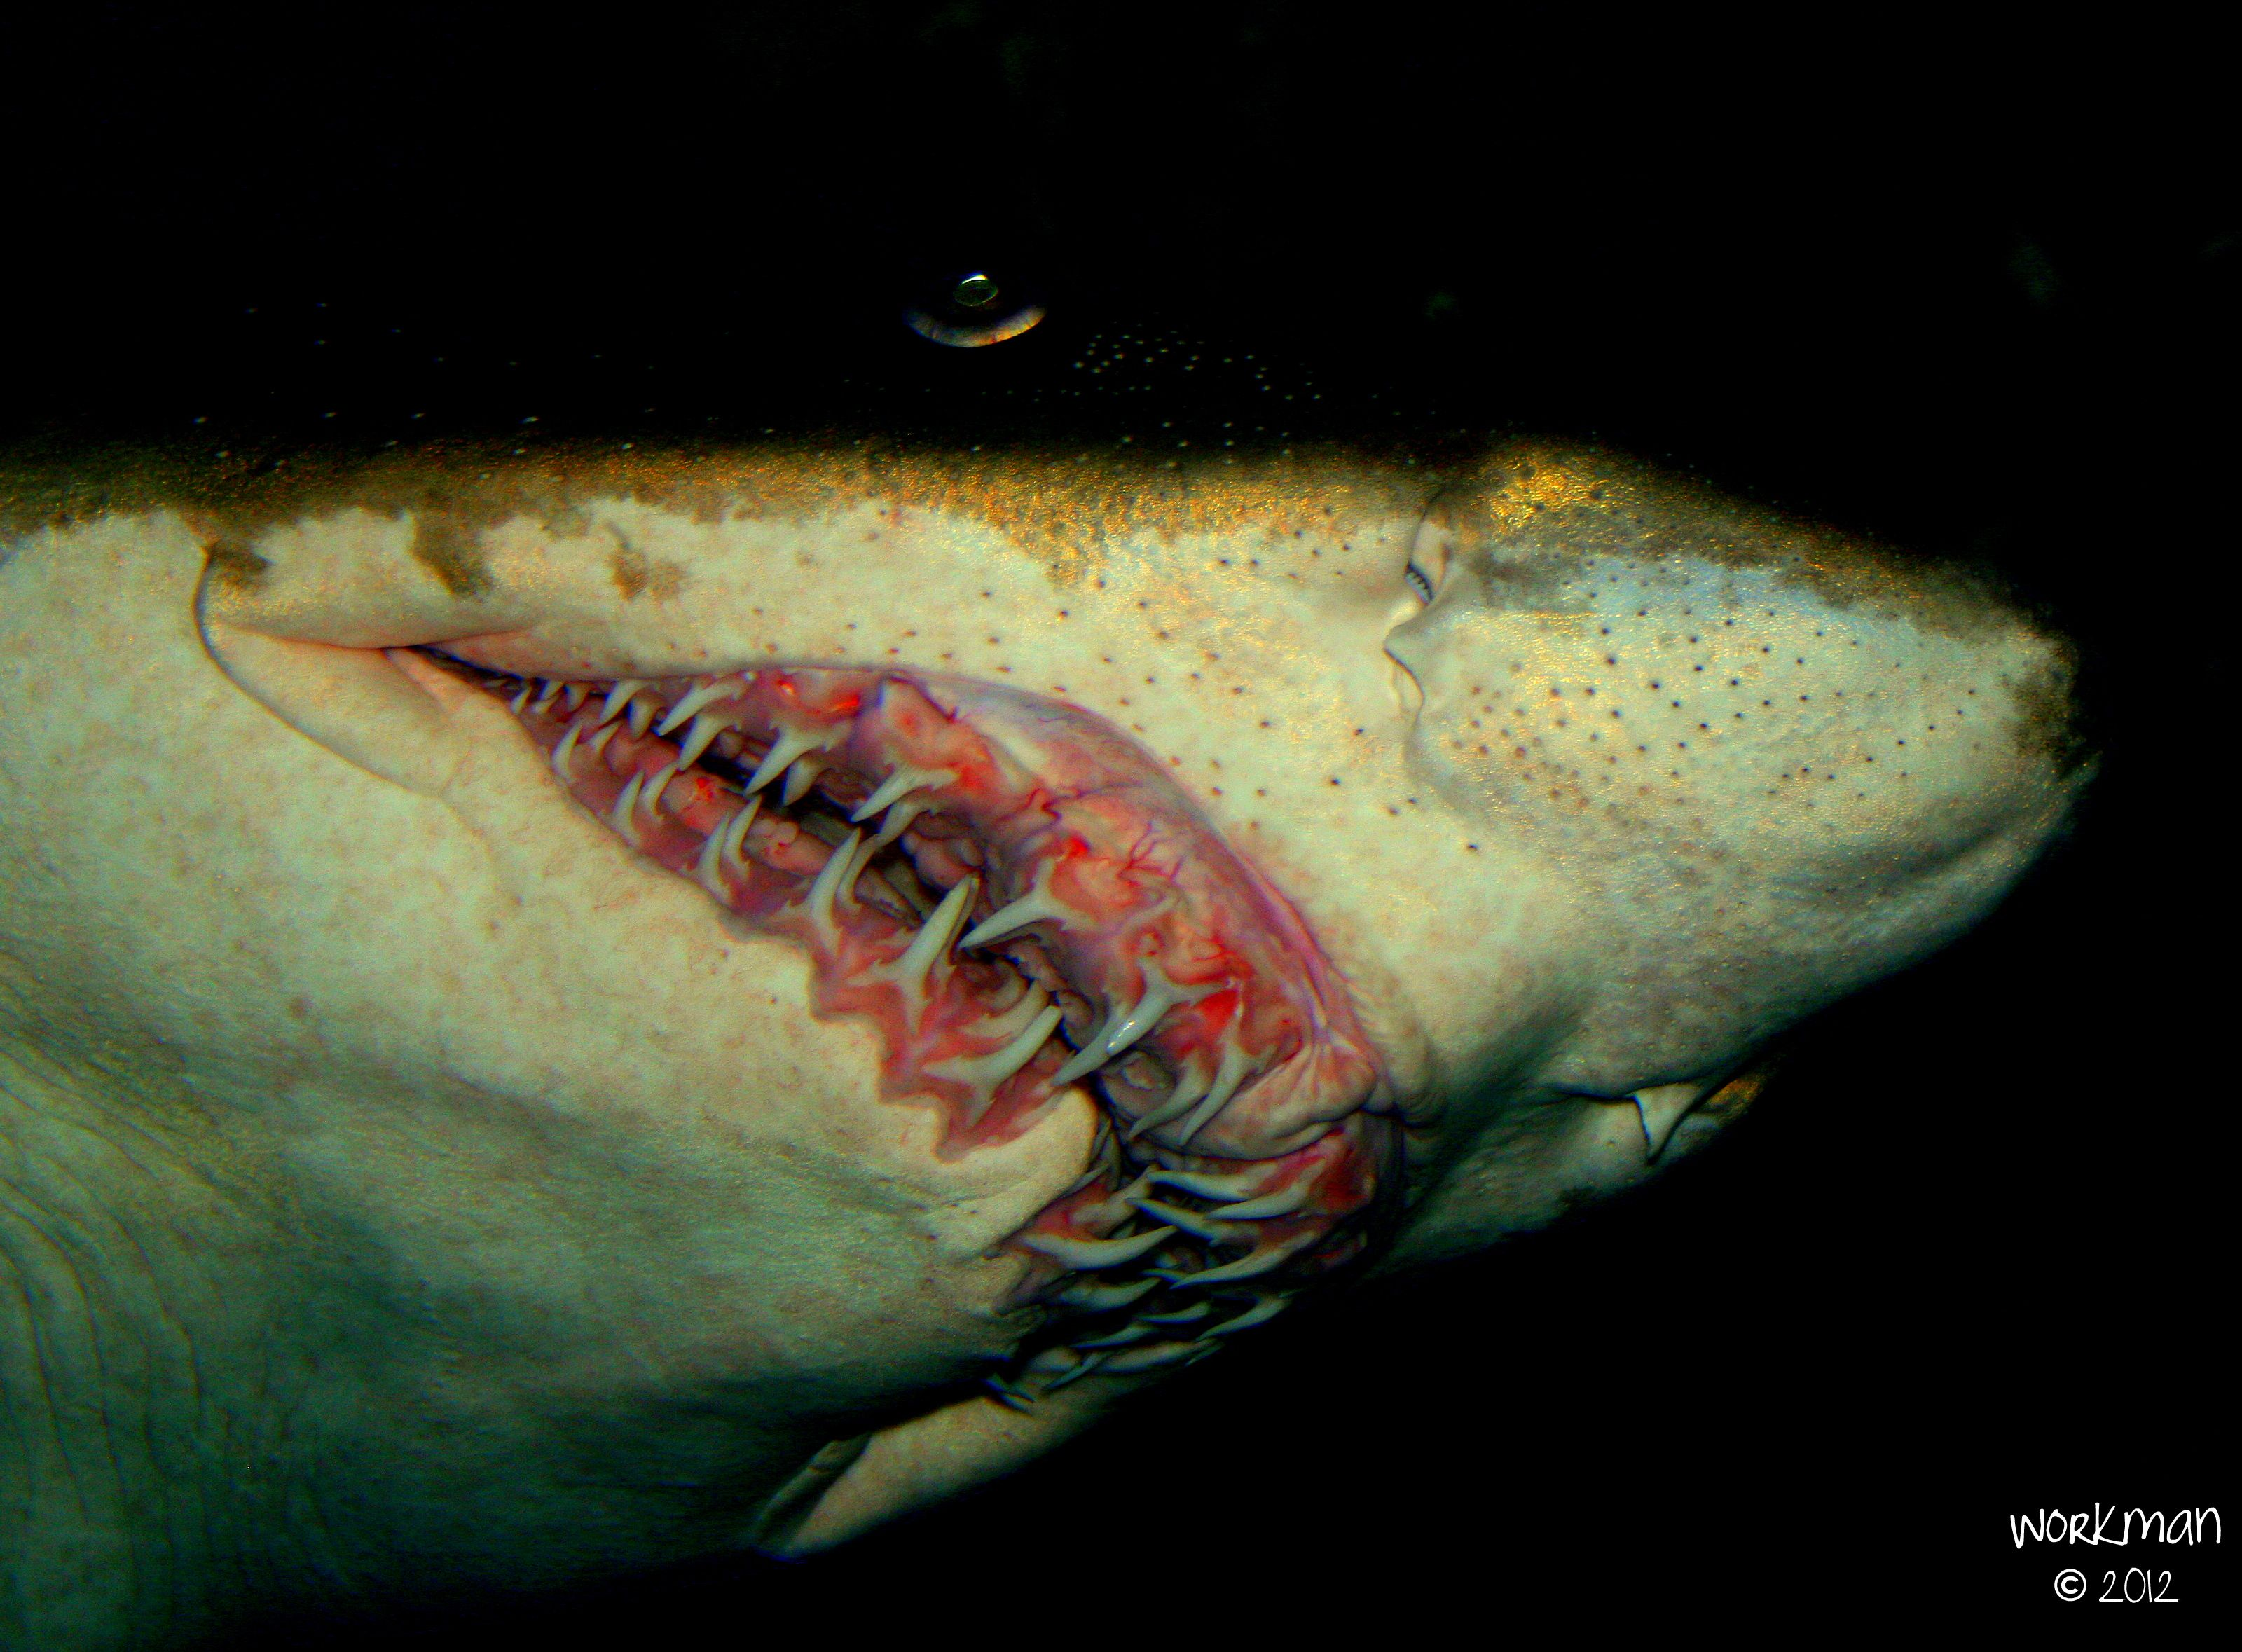 25 best omaha zoo images on pinterest omaha zoo the zoo and zoos shark at the omaha zoo thats a lot of damn teeth publicscrutiny Image collections